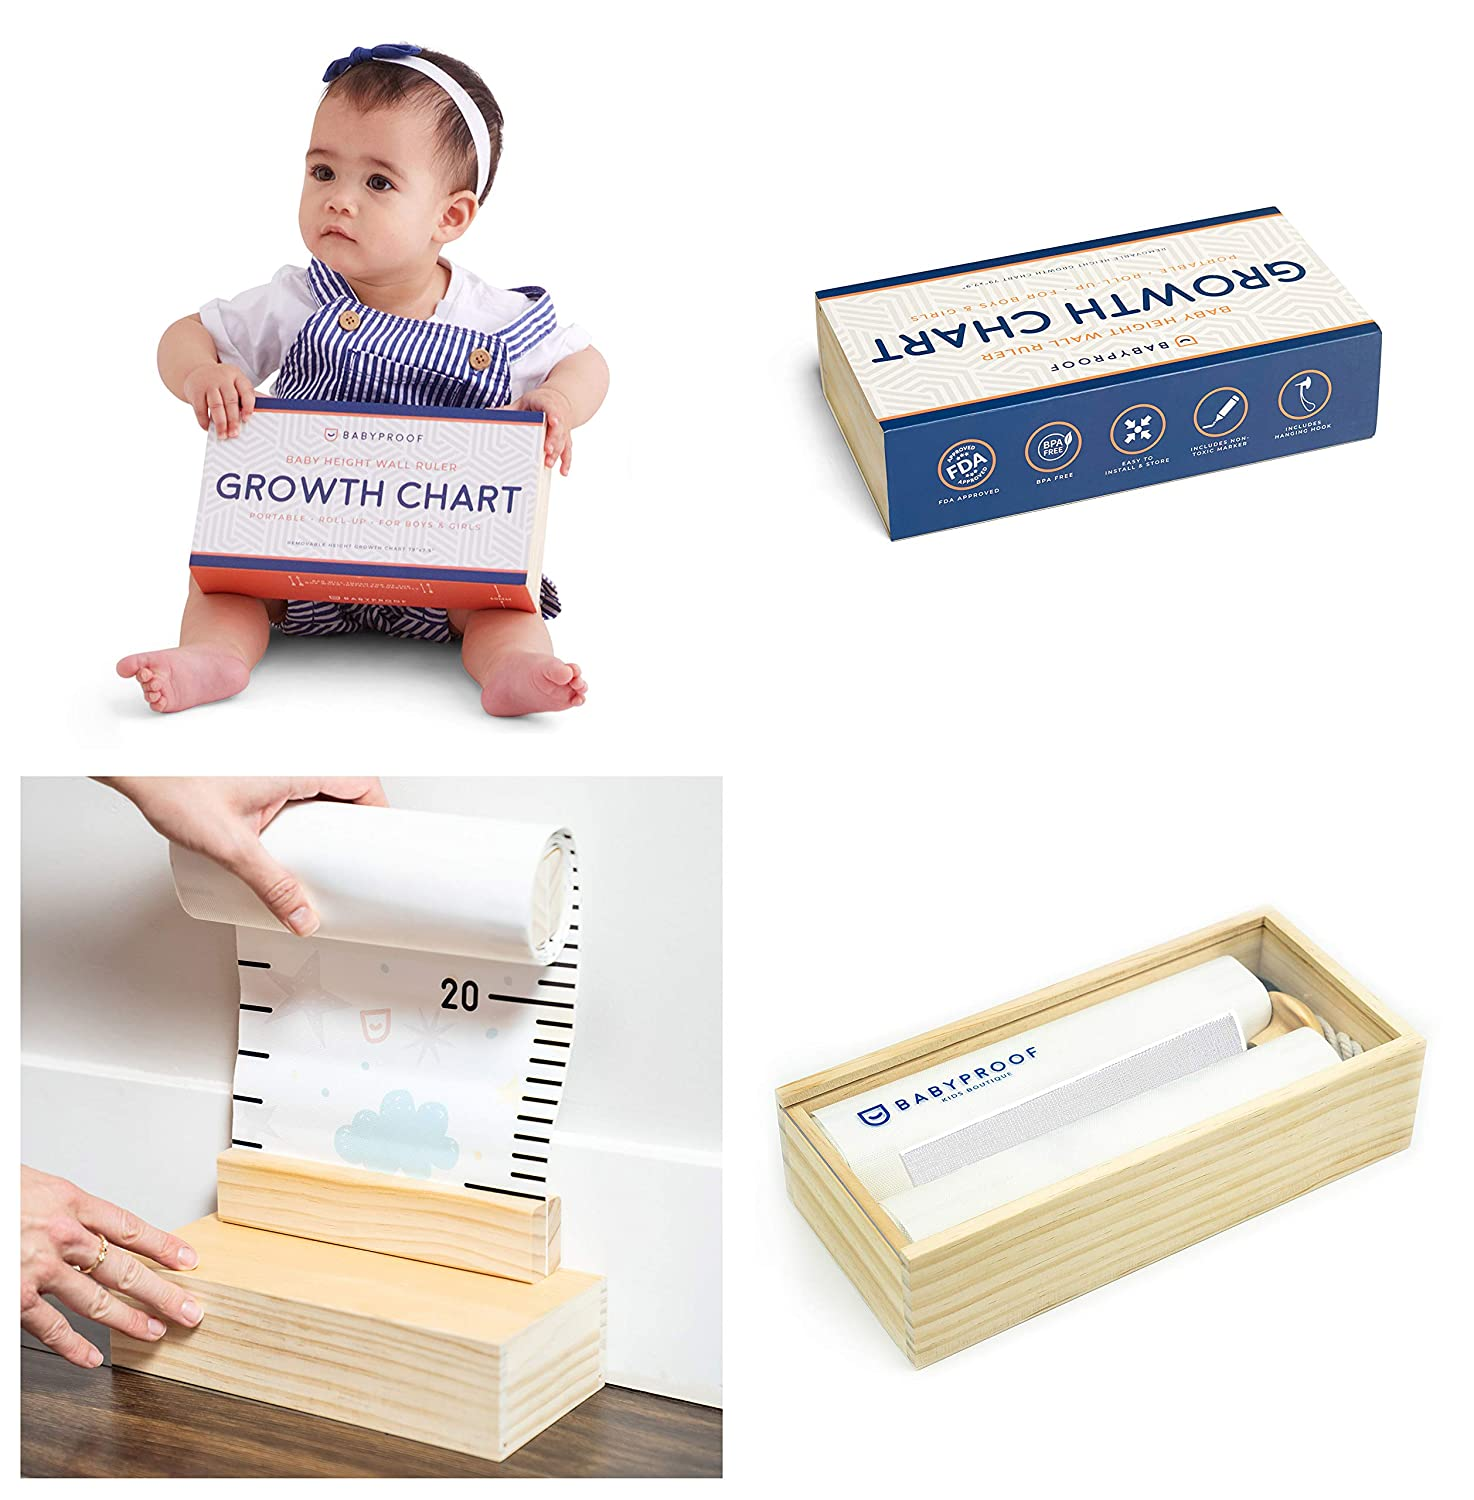 Buy Growth Chart for Kids by Baby Proof   Measuring Height Chart ...